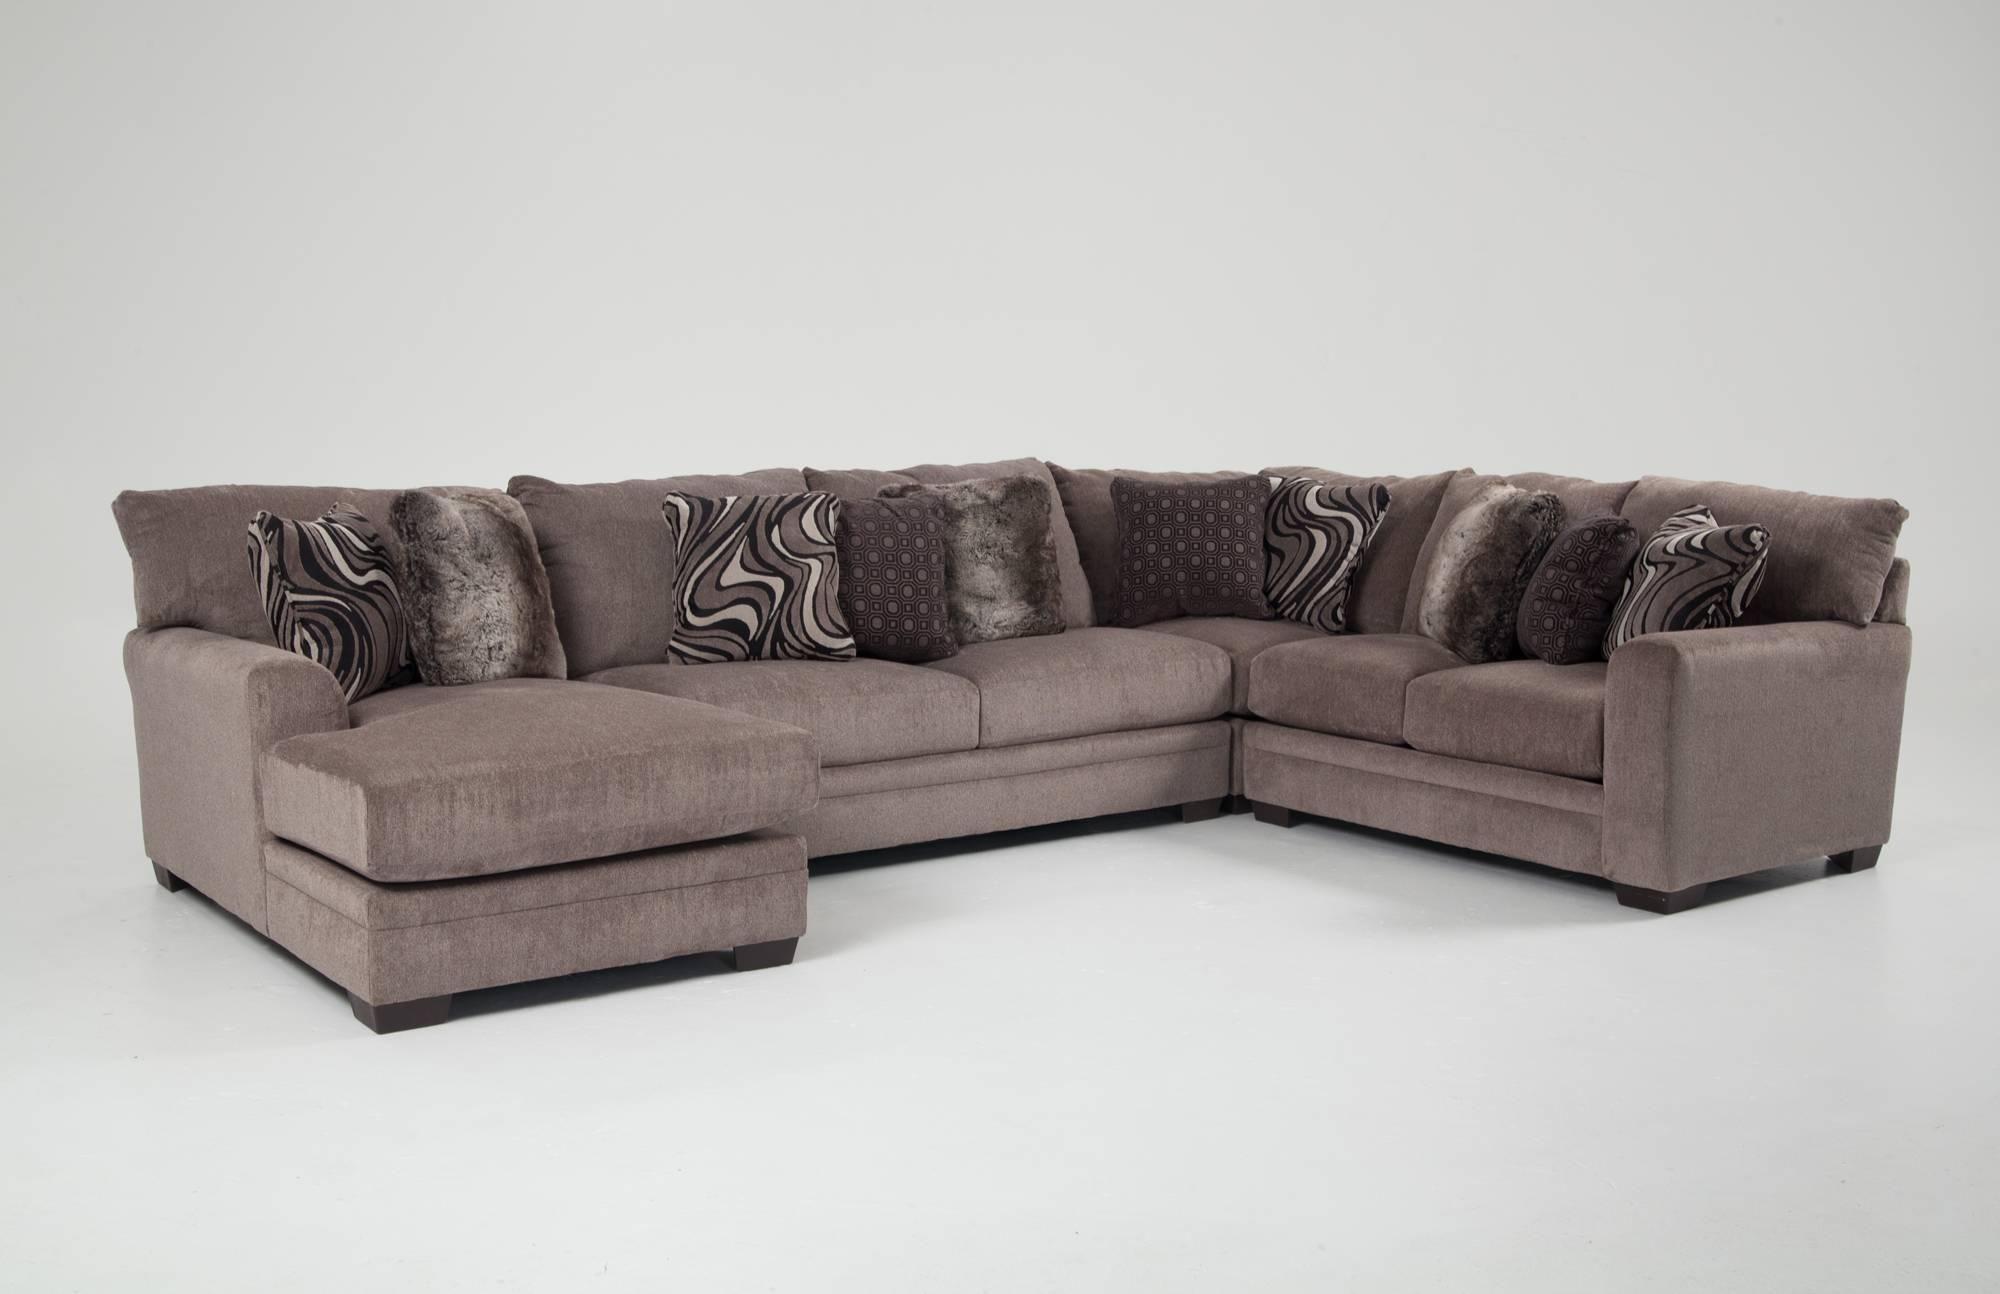 20 Best Collection Of Luxe Sofas Sofa Ideas